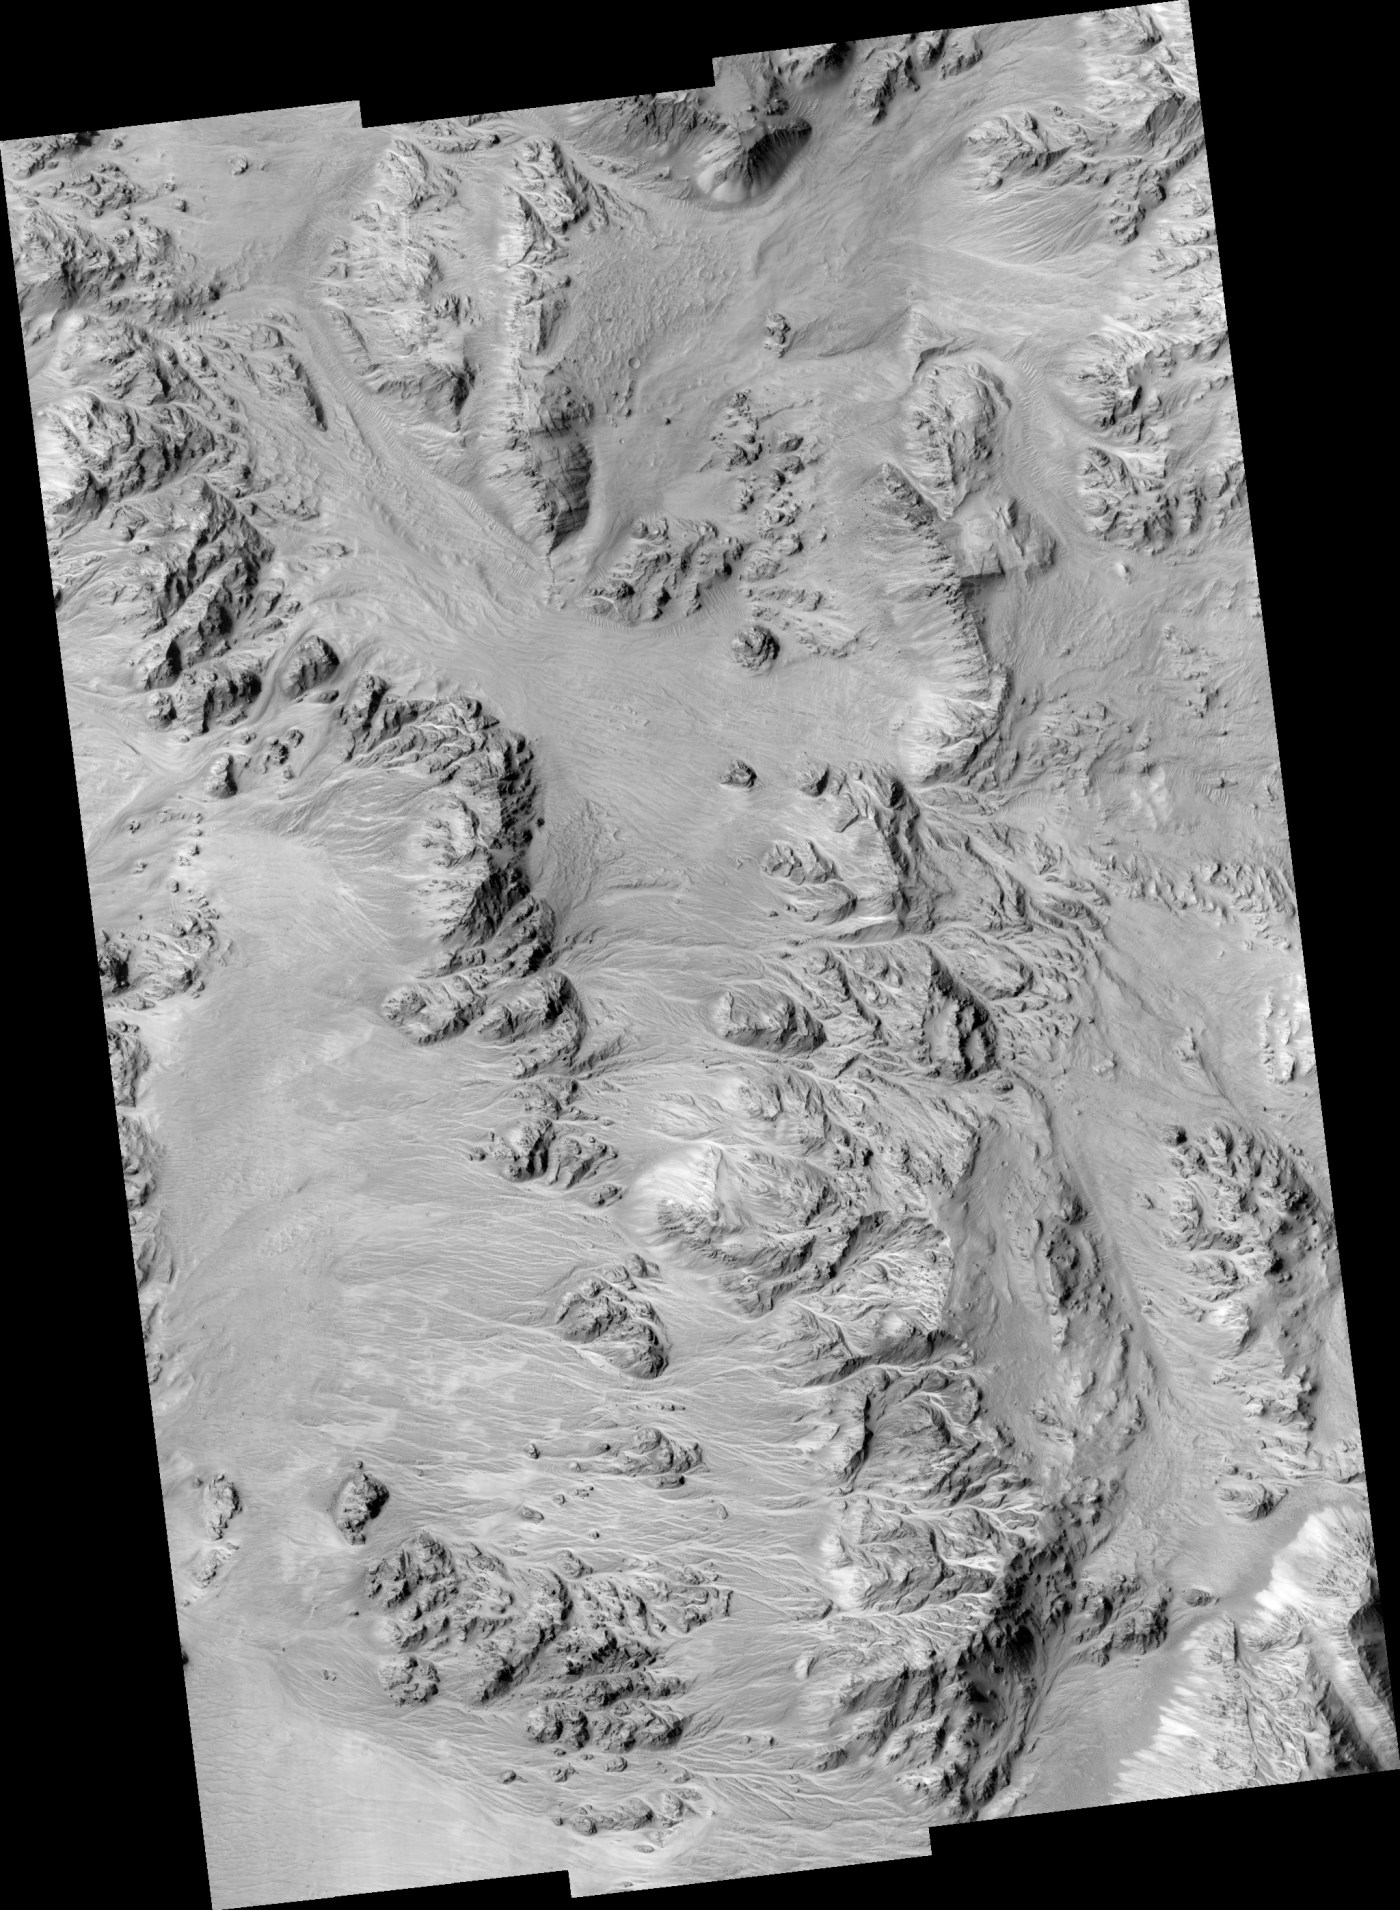 Alluvial Fans in Mojave Crater on Mars